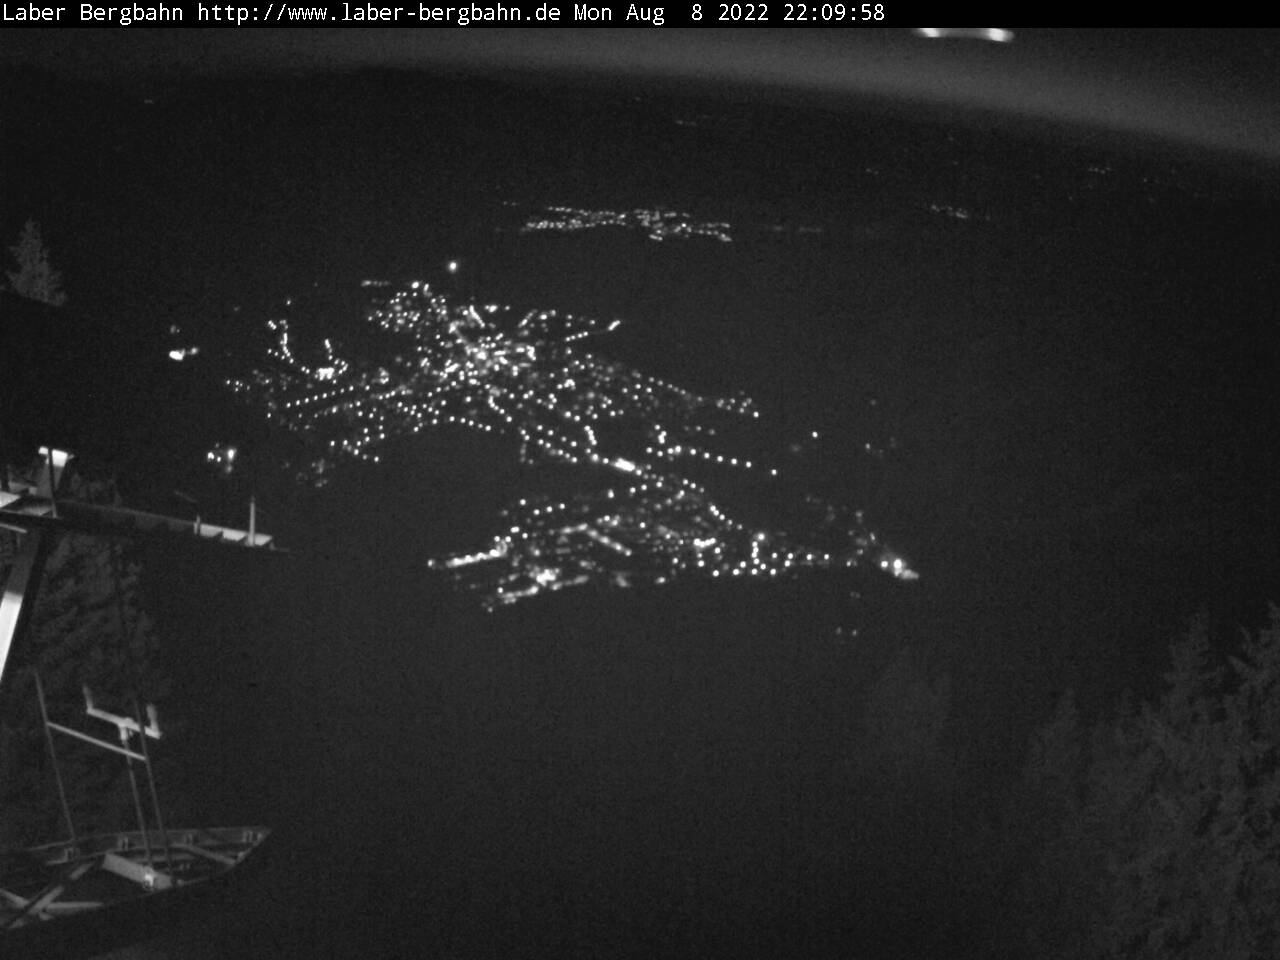 Webcam Ski Resort Oberammergau - Laber nach Norden - Bavaria Alps - Upper Bavaria